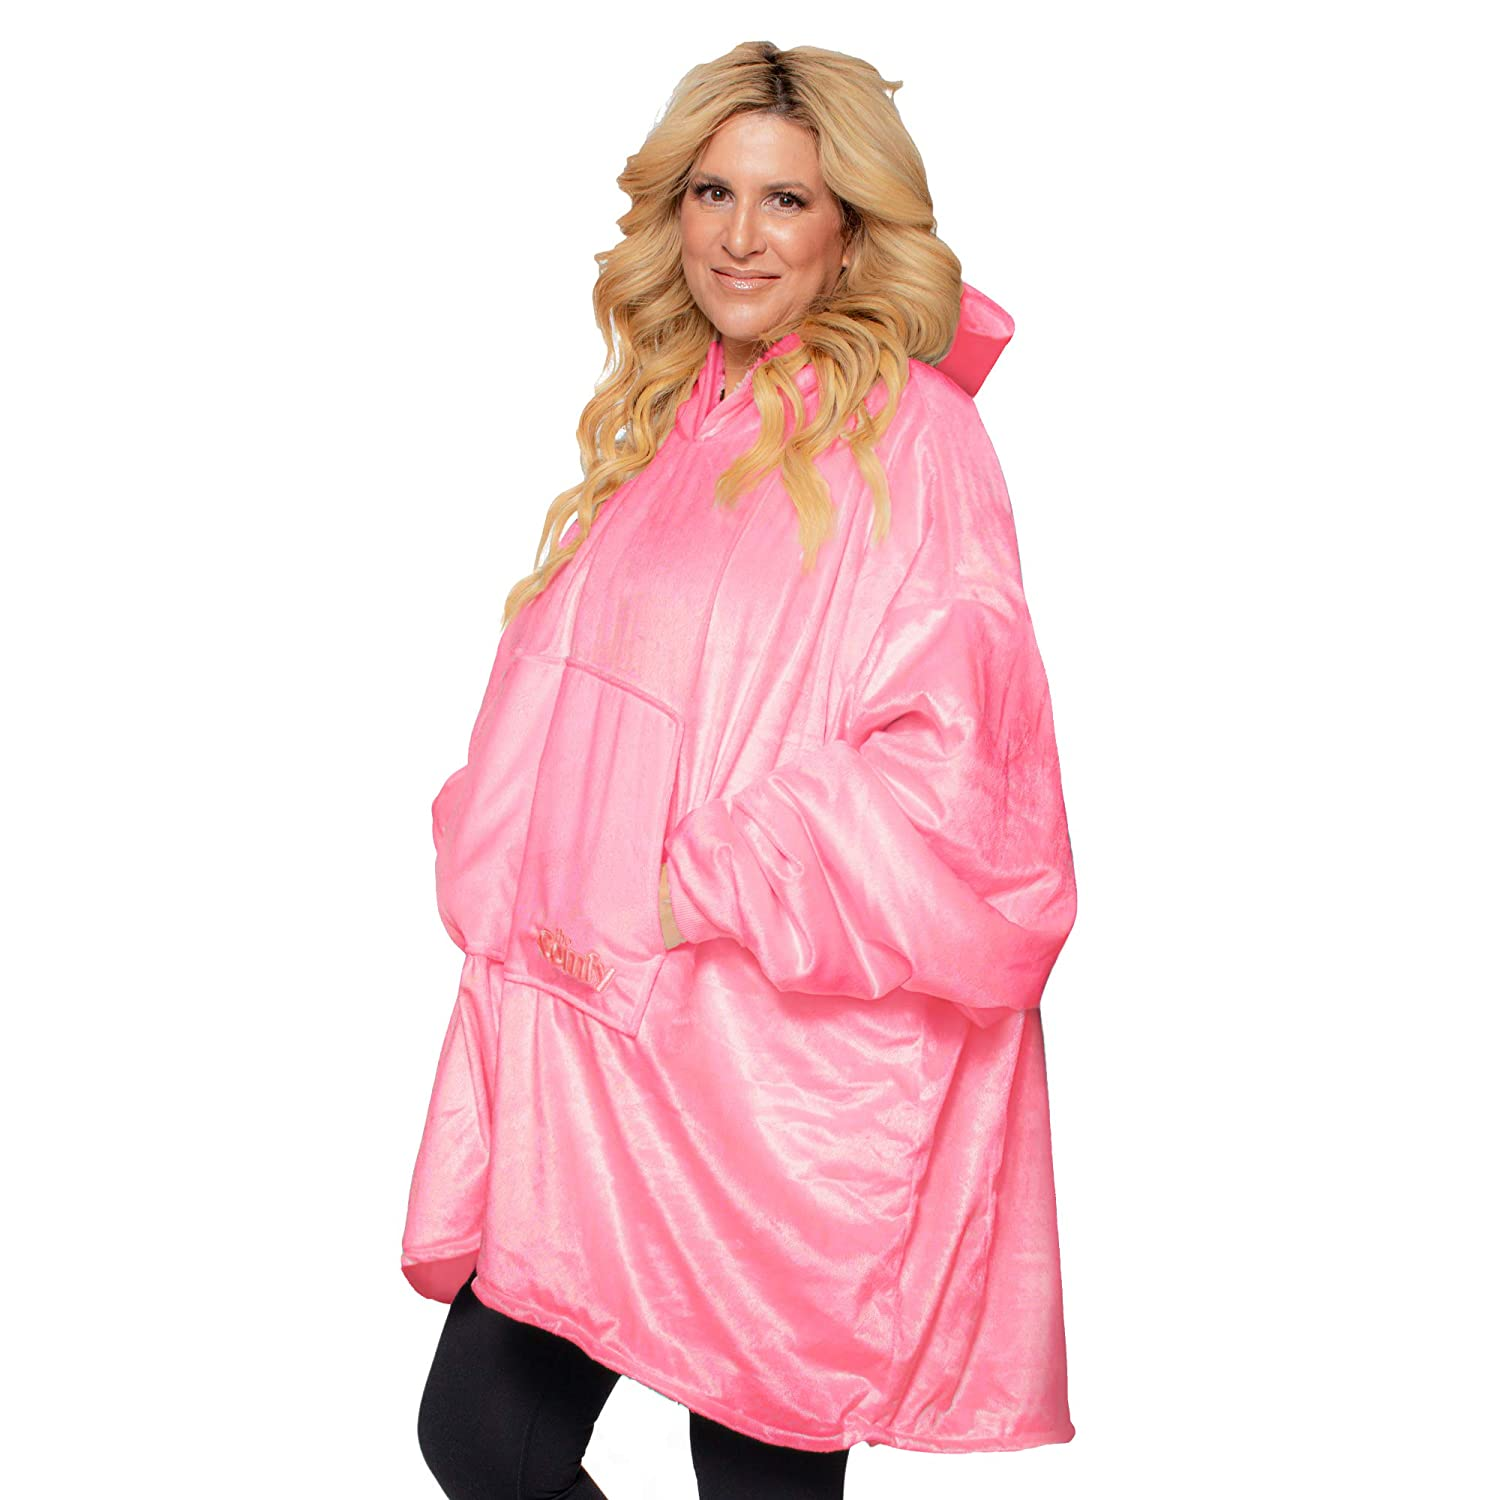 THE COMFY: Original Blanket Sweatshirt, Seen on Shark Tank, Invented by 2 Brothers, Warm, Soft, Cozy, Multiple Colors, 1 Size Fits All, Women, Wife, Girls, Friends Pink